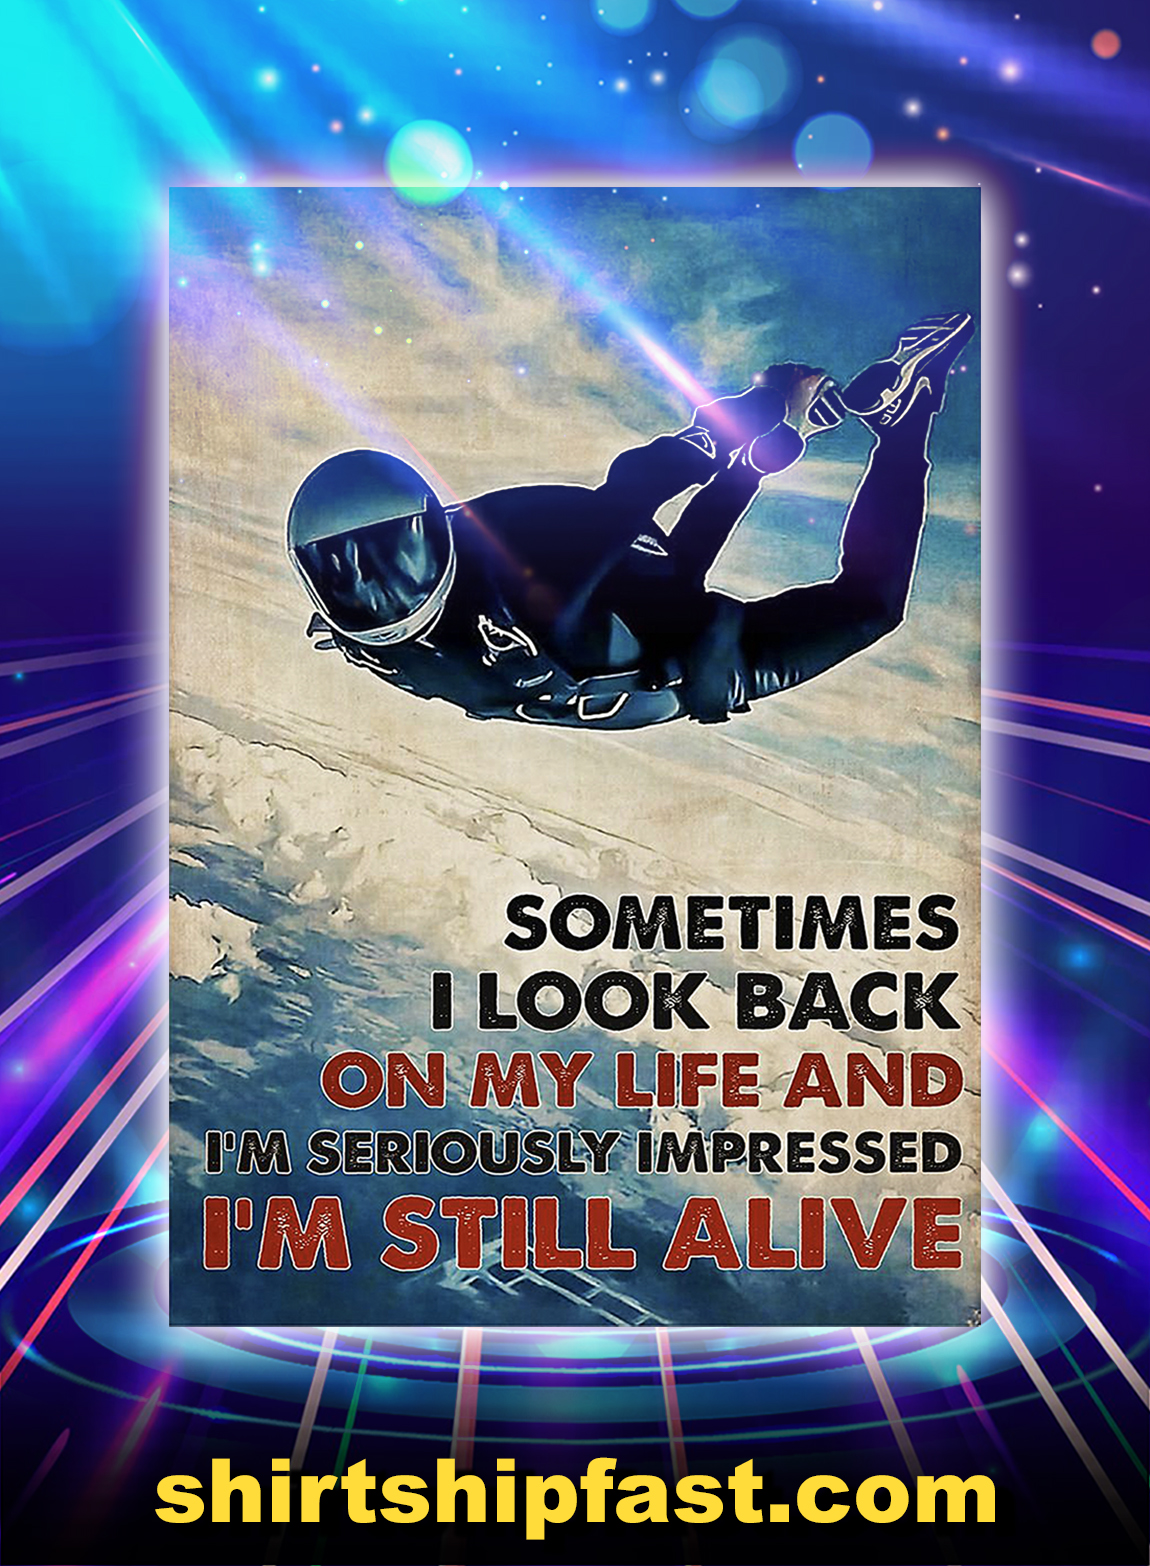 Skydiver sometimes i look back on my life poster - A3